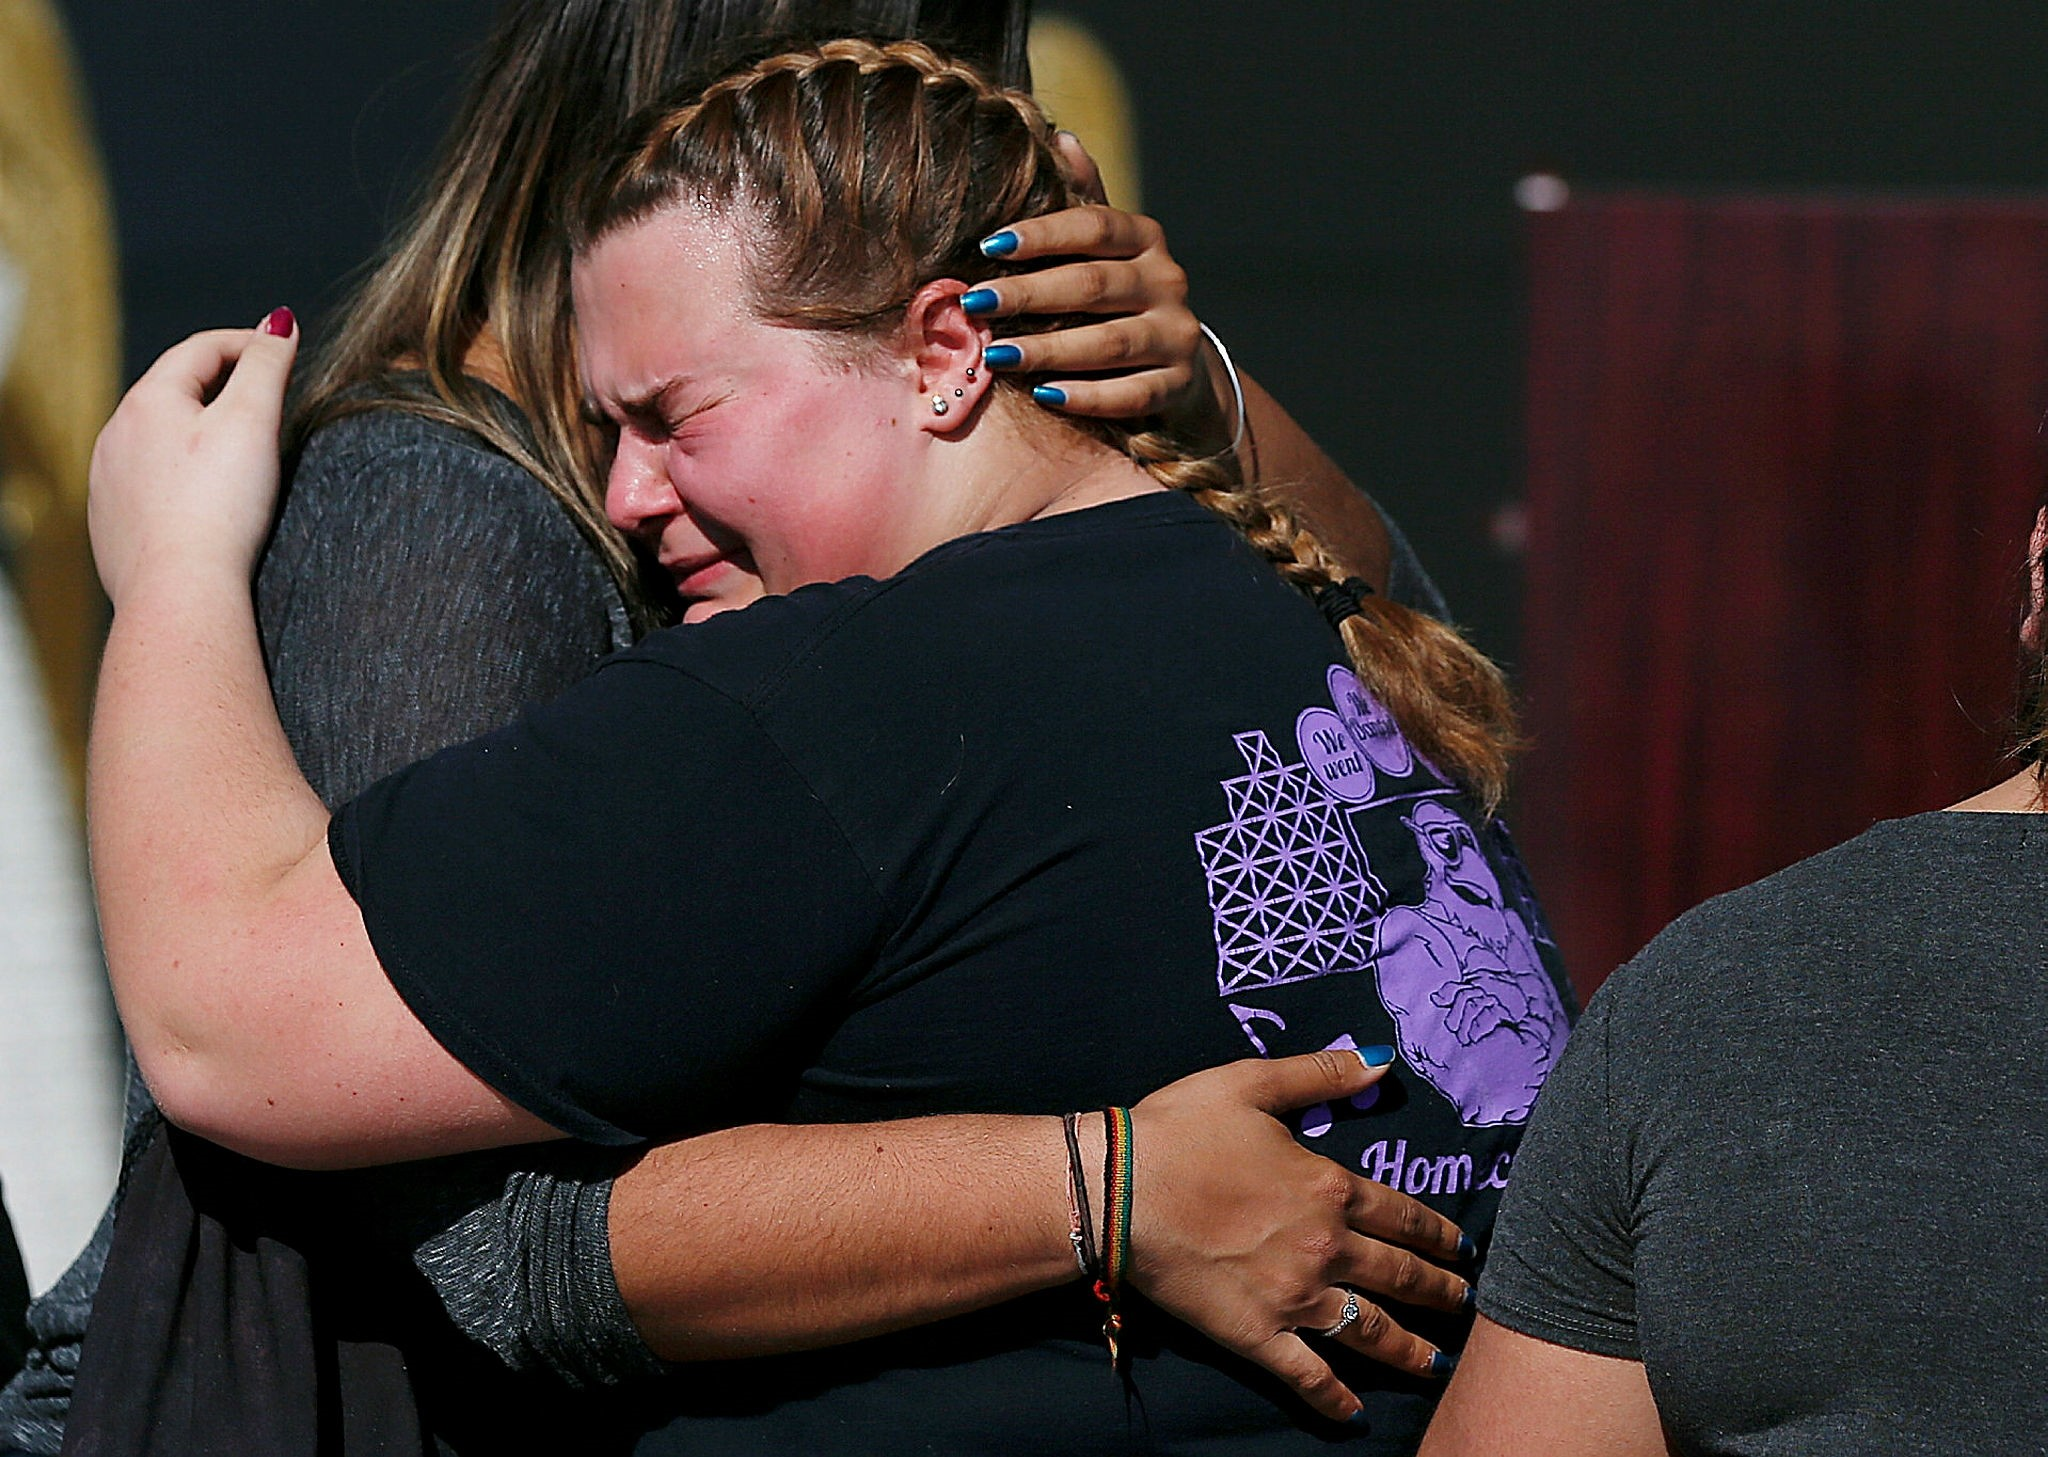 Kieran Ahearn, right, cries on the shoulder of her friend, Lara Bortolotti, left, during a community vigil at Pine Trails Park, Thursday, Feb. 15, 2018, in Parkland, for the victims of the shooting at Marjory Stoneman Douglas High School. (AP Photo)